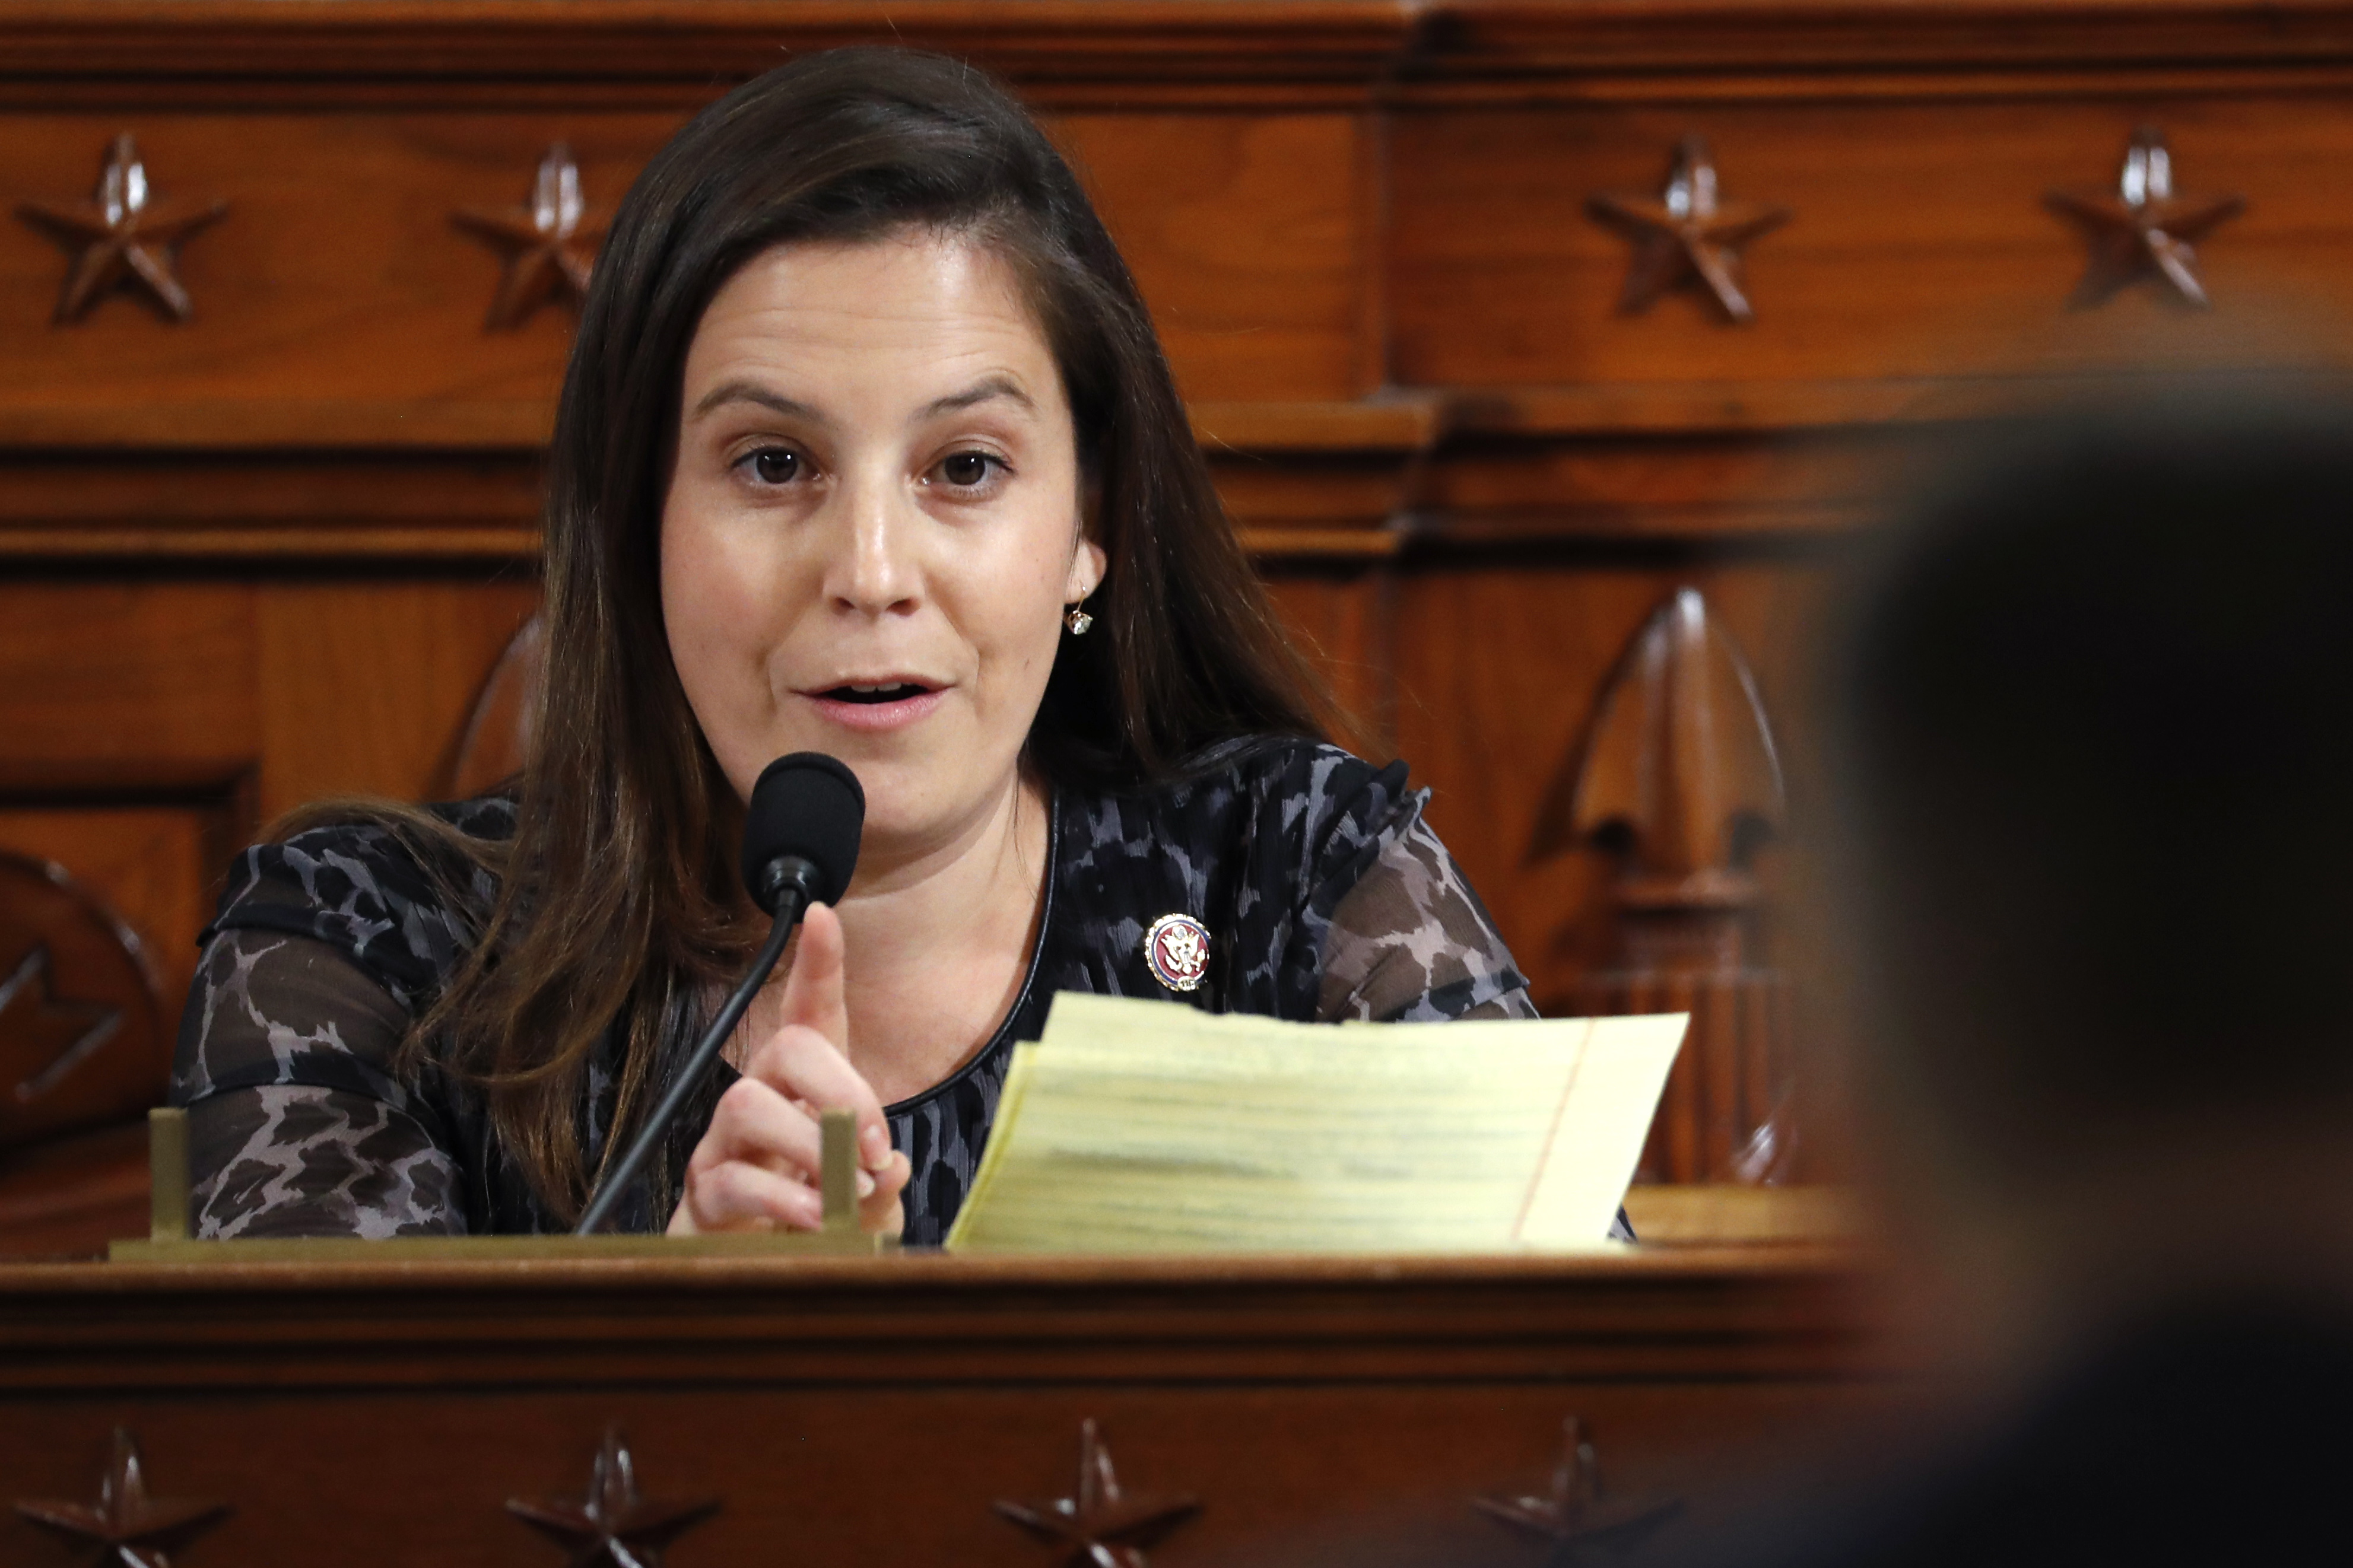 Every Impeachment Witness Has Said Yes to Possible Hunter Biden Conflict of Interest: Stefanik